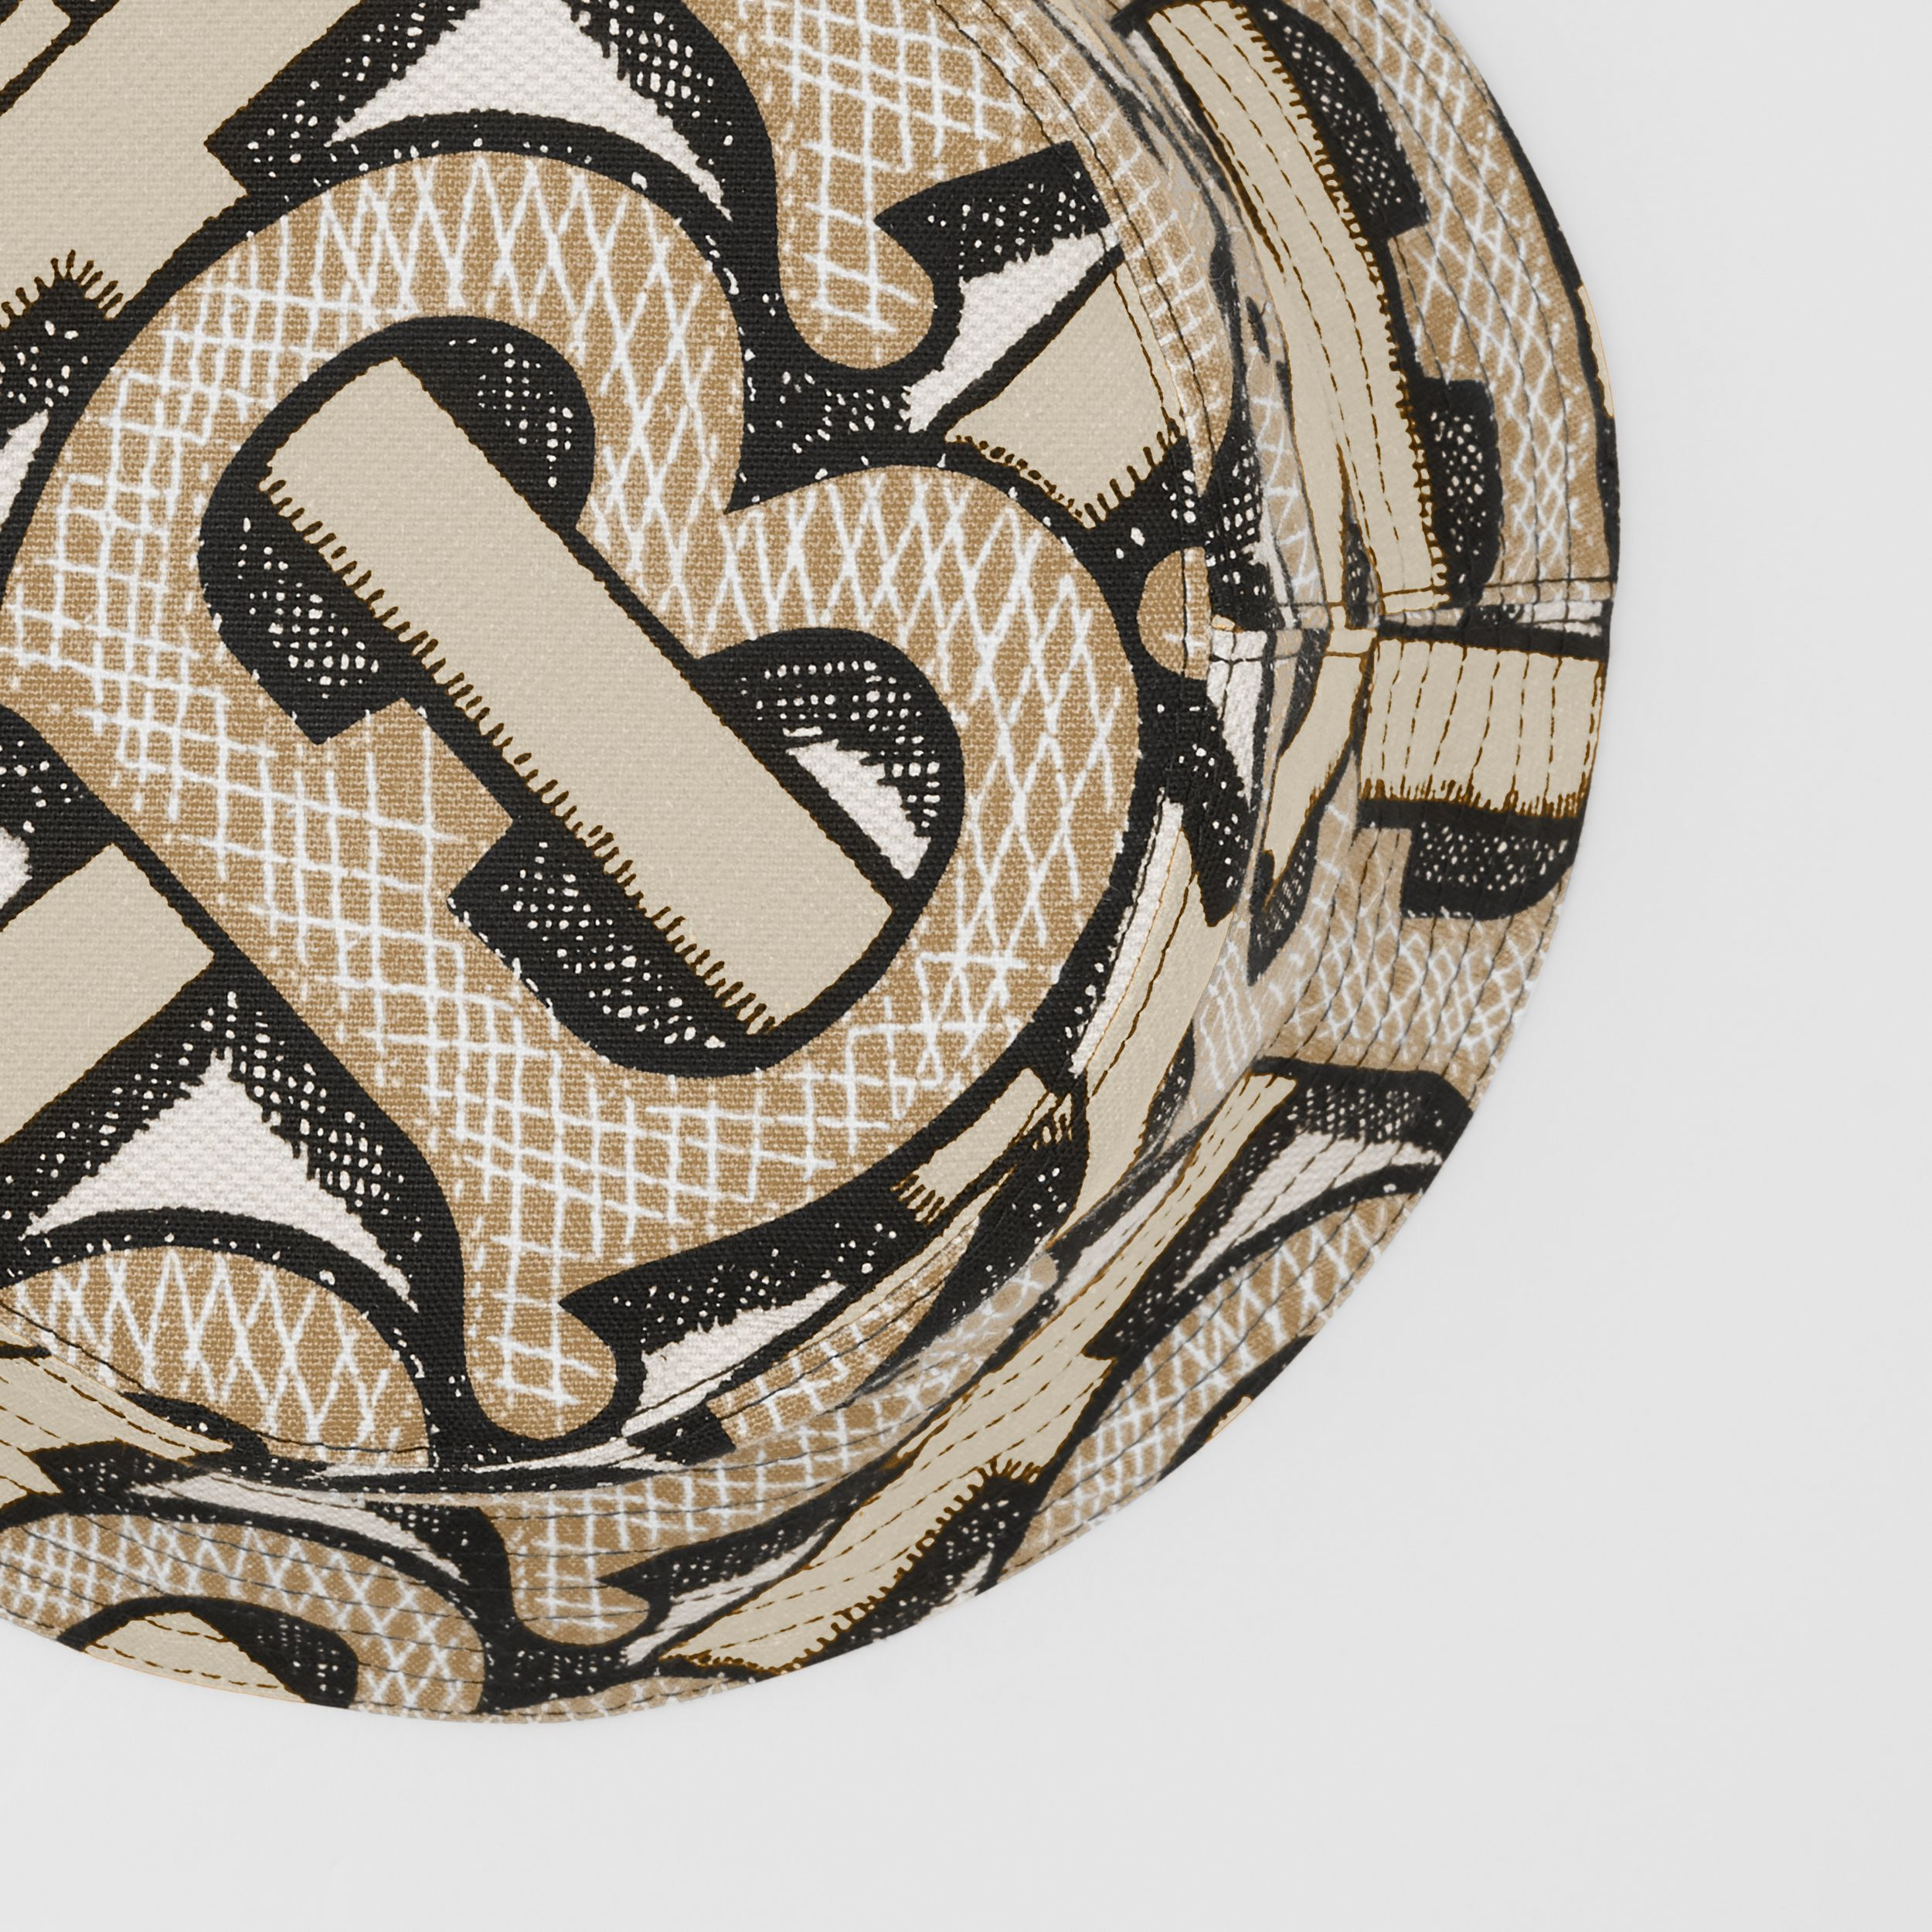 Monogram Print Cotton Canvas Bucket Hat in Dark Beige | Burberry Hong Kong S.A.R. - 2